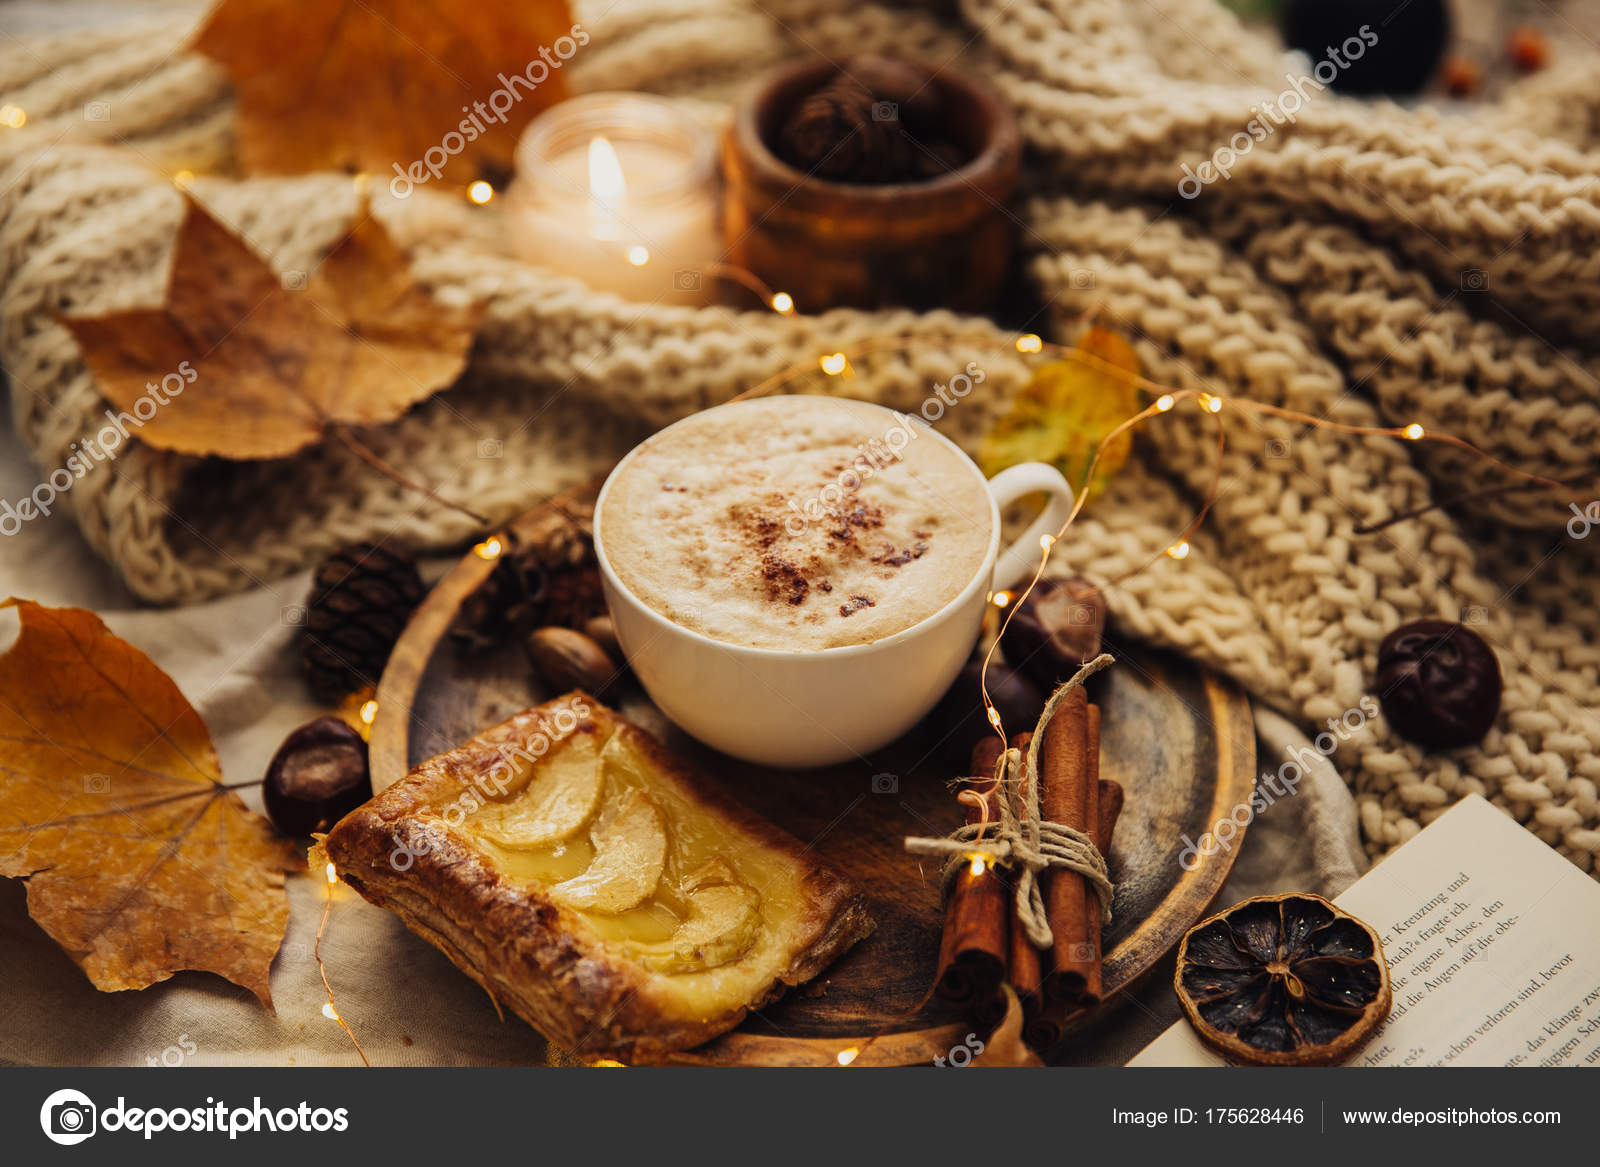 Cozy Fall Wallpaper Autumn Cozy Fall Background Hot Coffee Cup Decorations